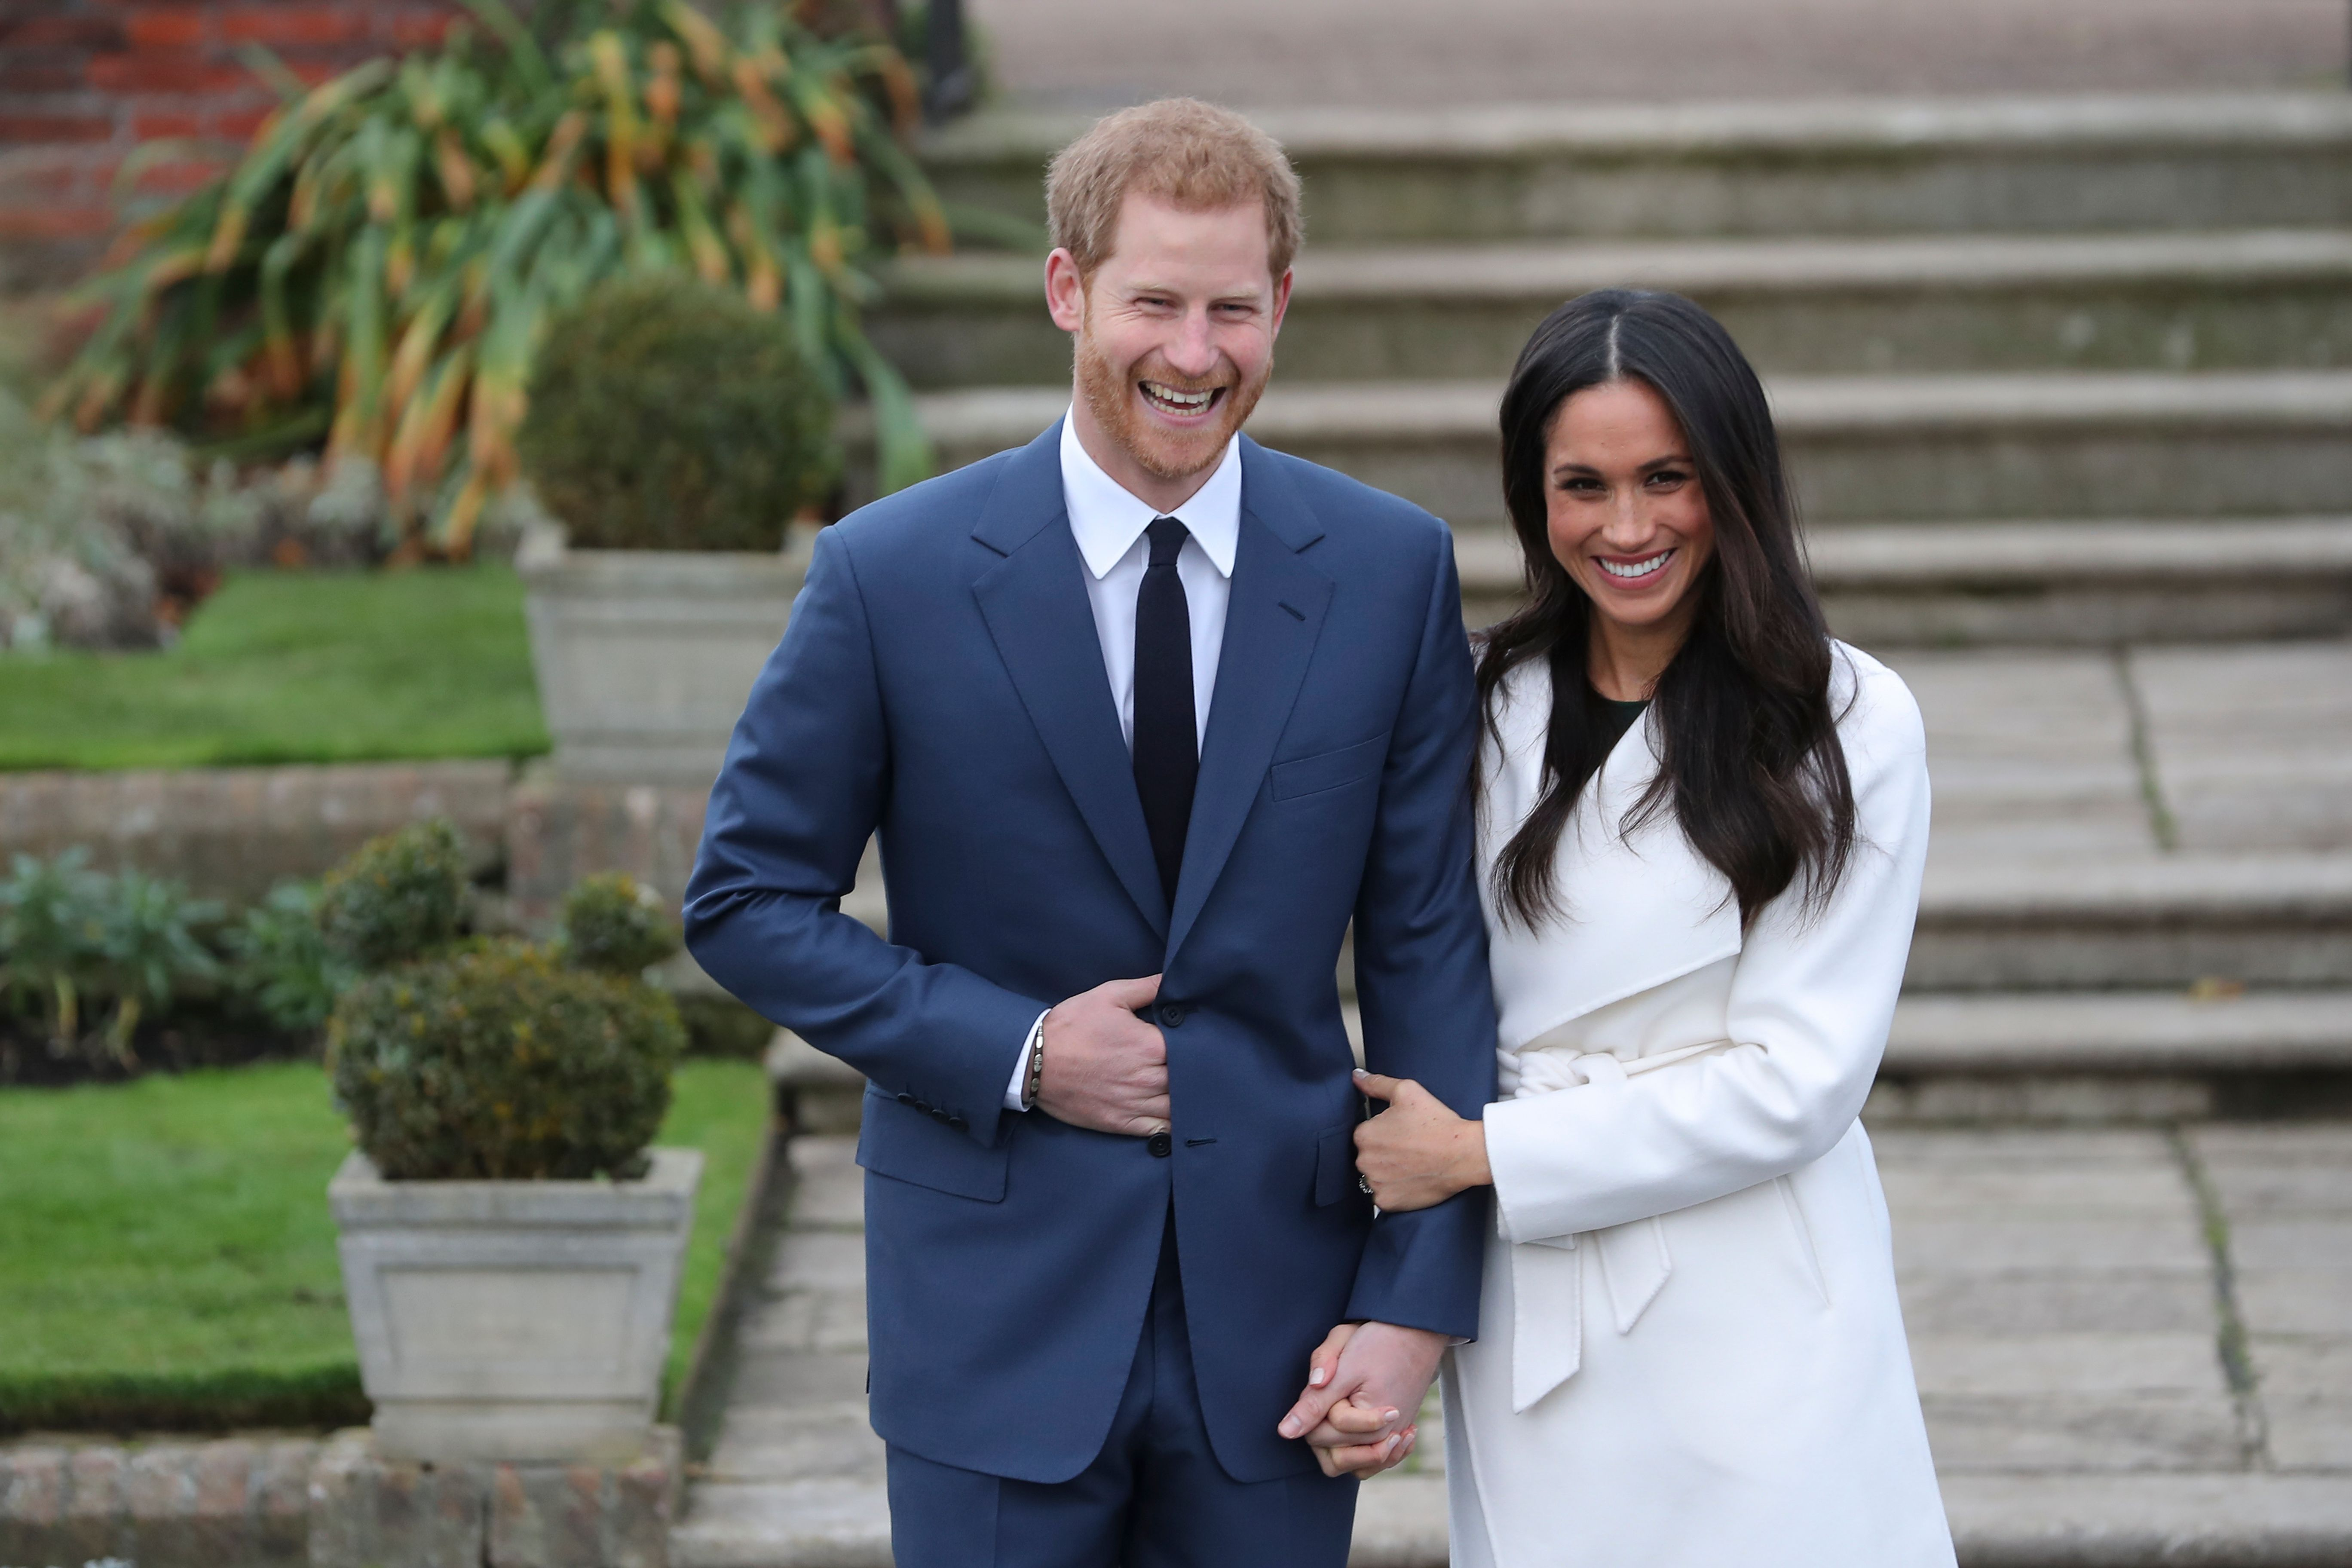 Prince Harry and Meghan Markle annouce engagement